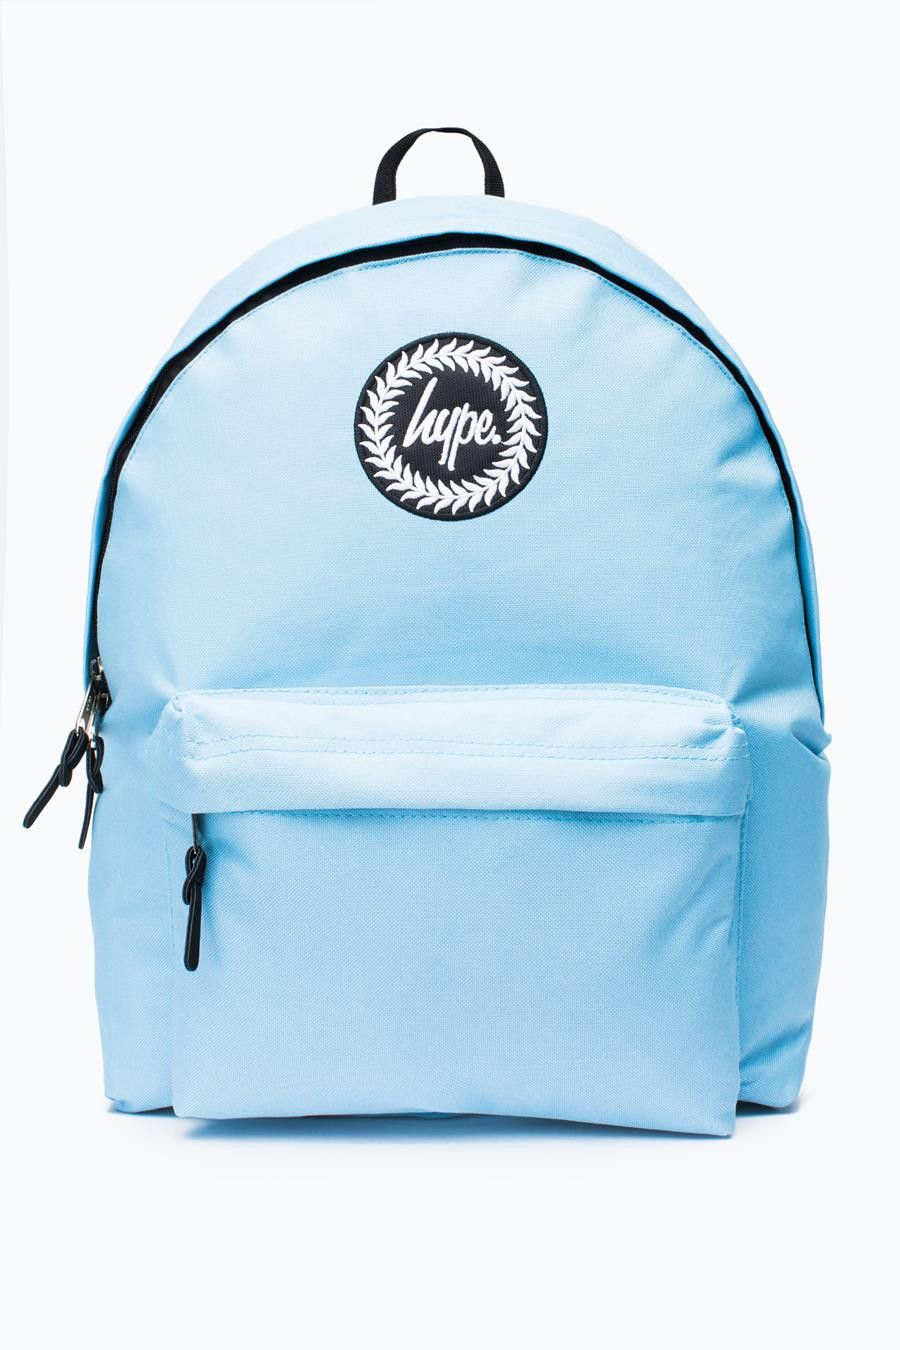 1bea89380f7 Baby blue backpack in 2019   Hype backpacks   Backpacks, Blue bags, Bags